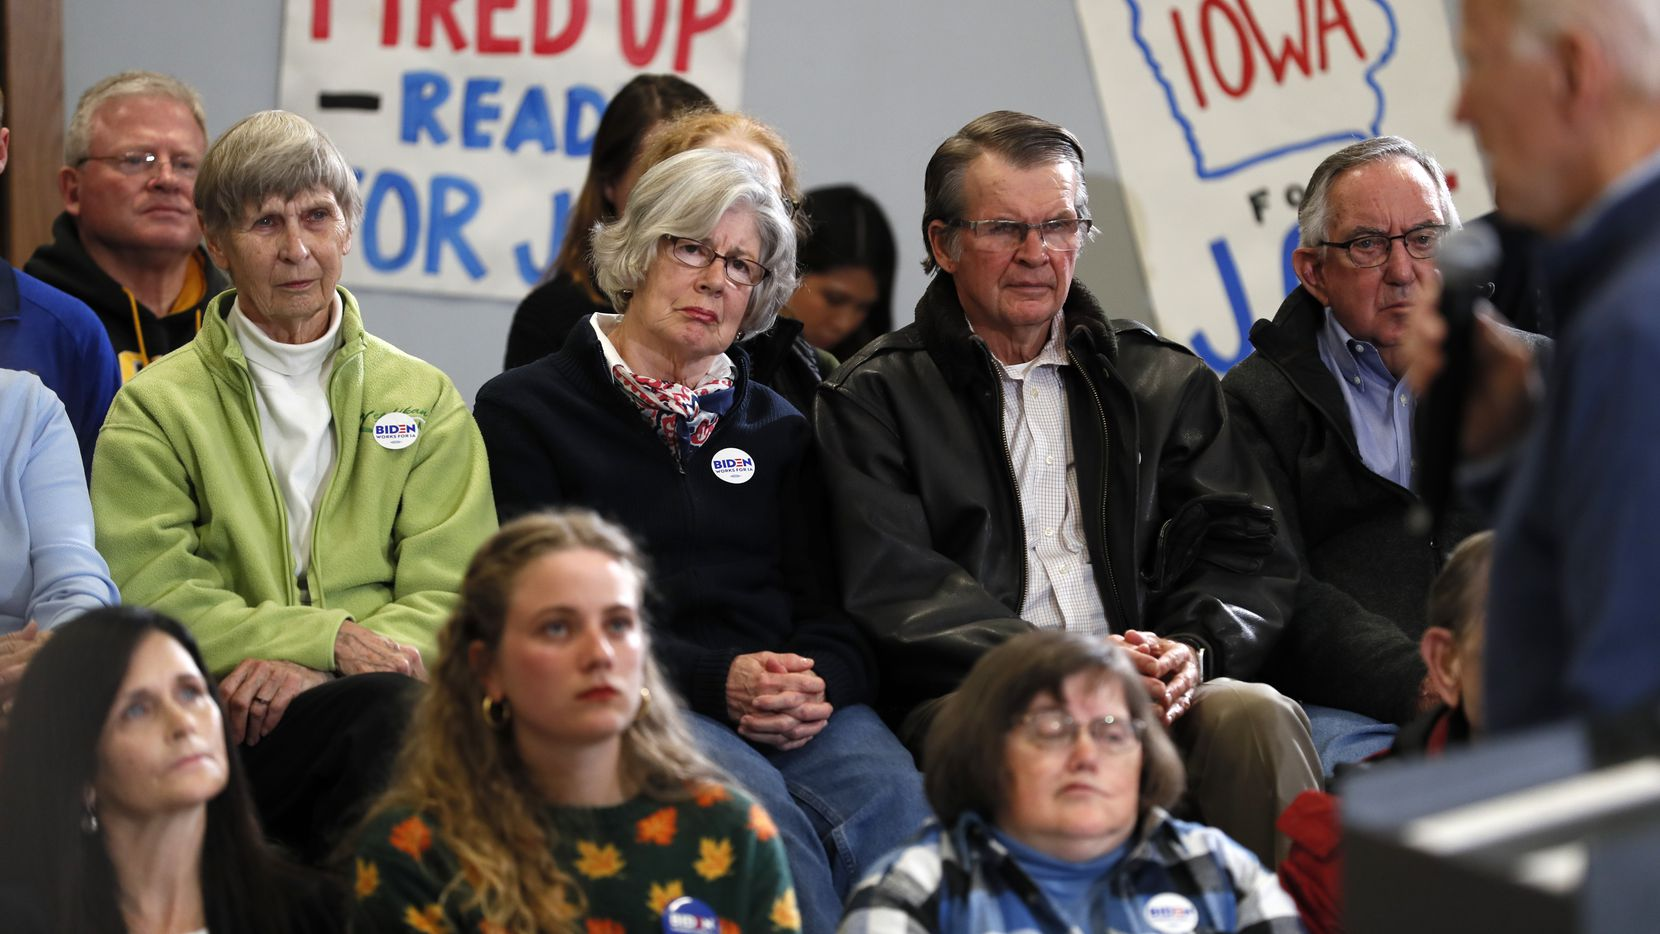 Audience members listen to Democratic presidential candidate and former Vice President Joe Biden, right, speak during a town hall meeting Friday, Nov. 22, 2019, in Winterset, Iowa. (AP Photo/Charlie Neibergall)